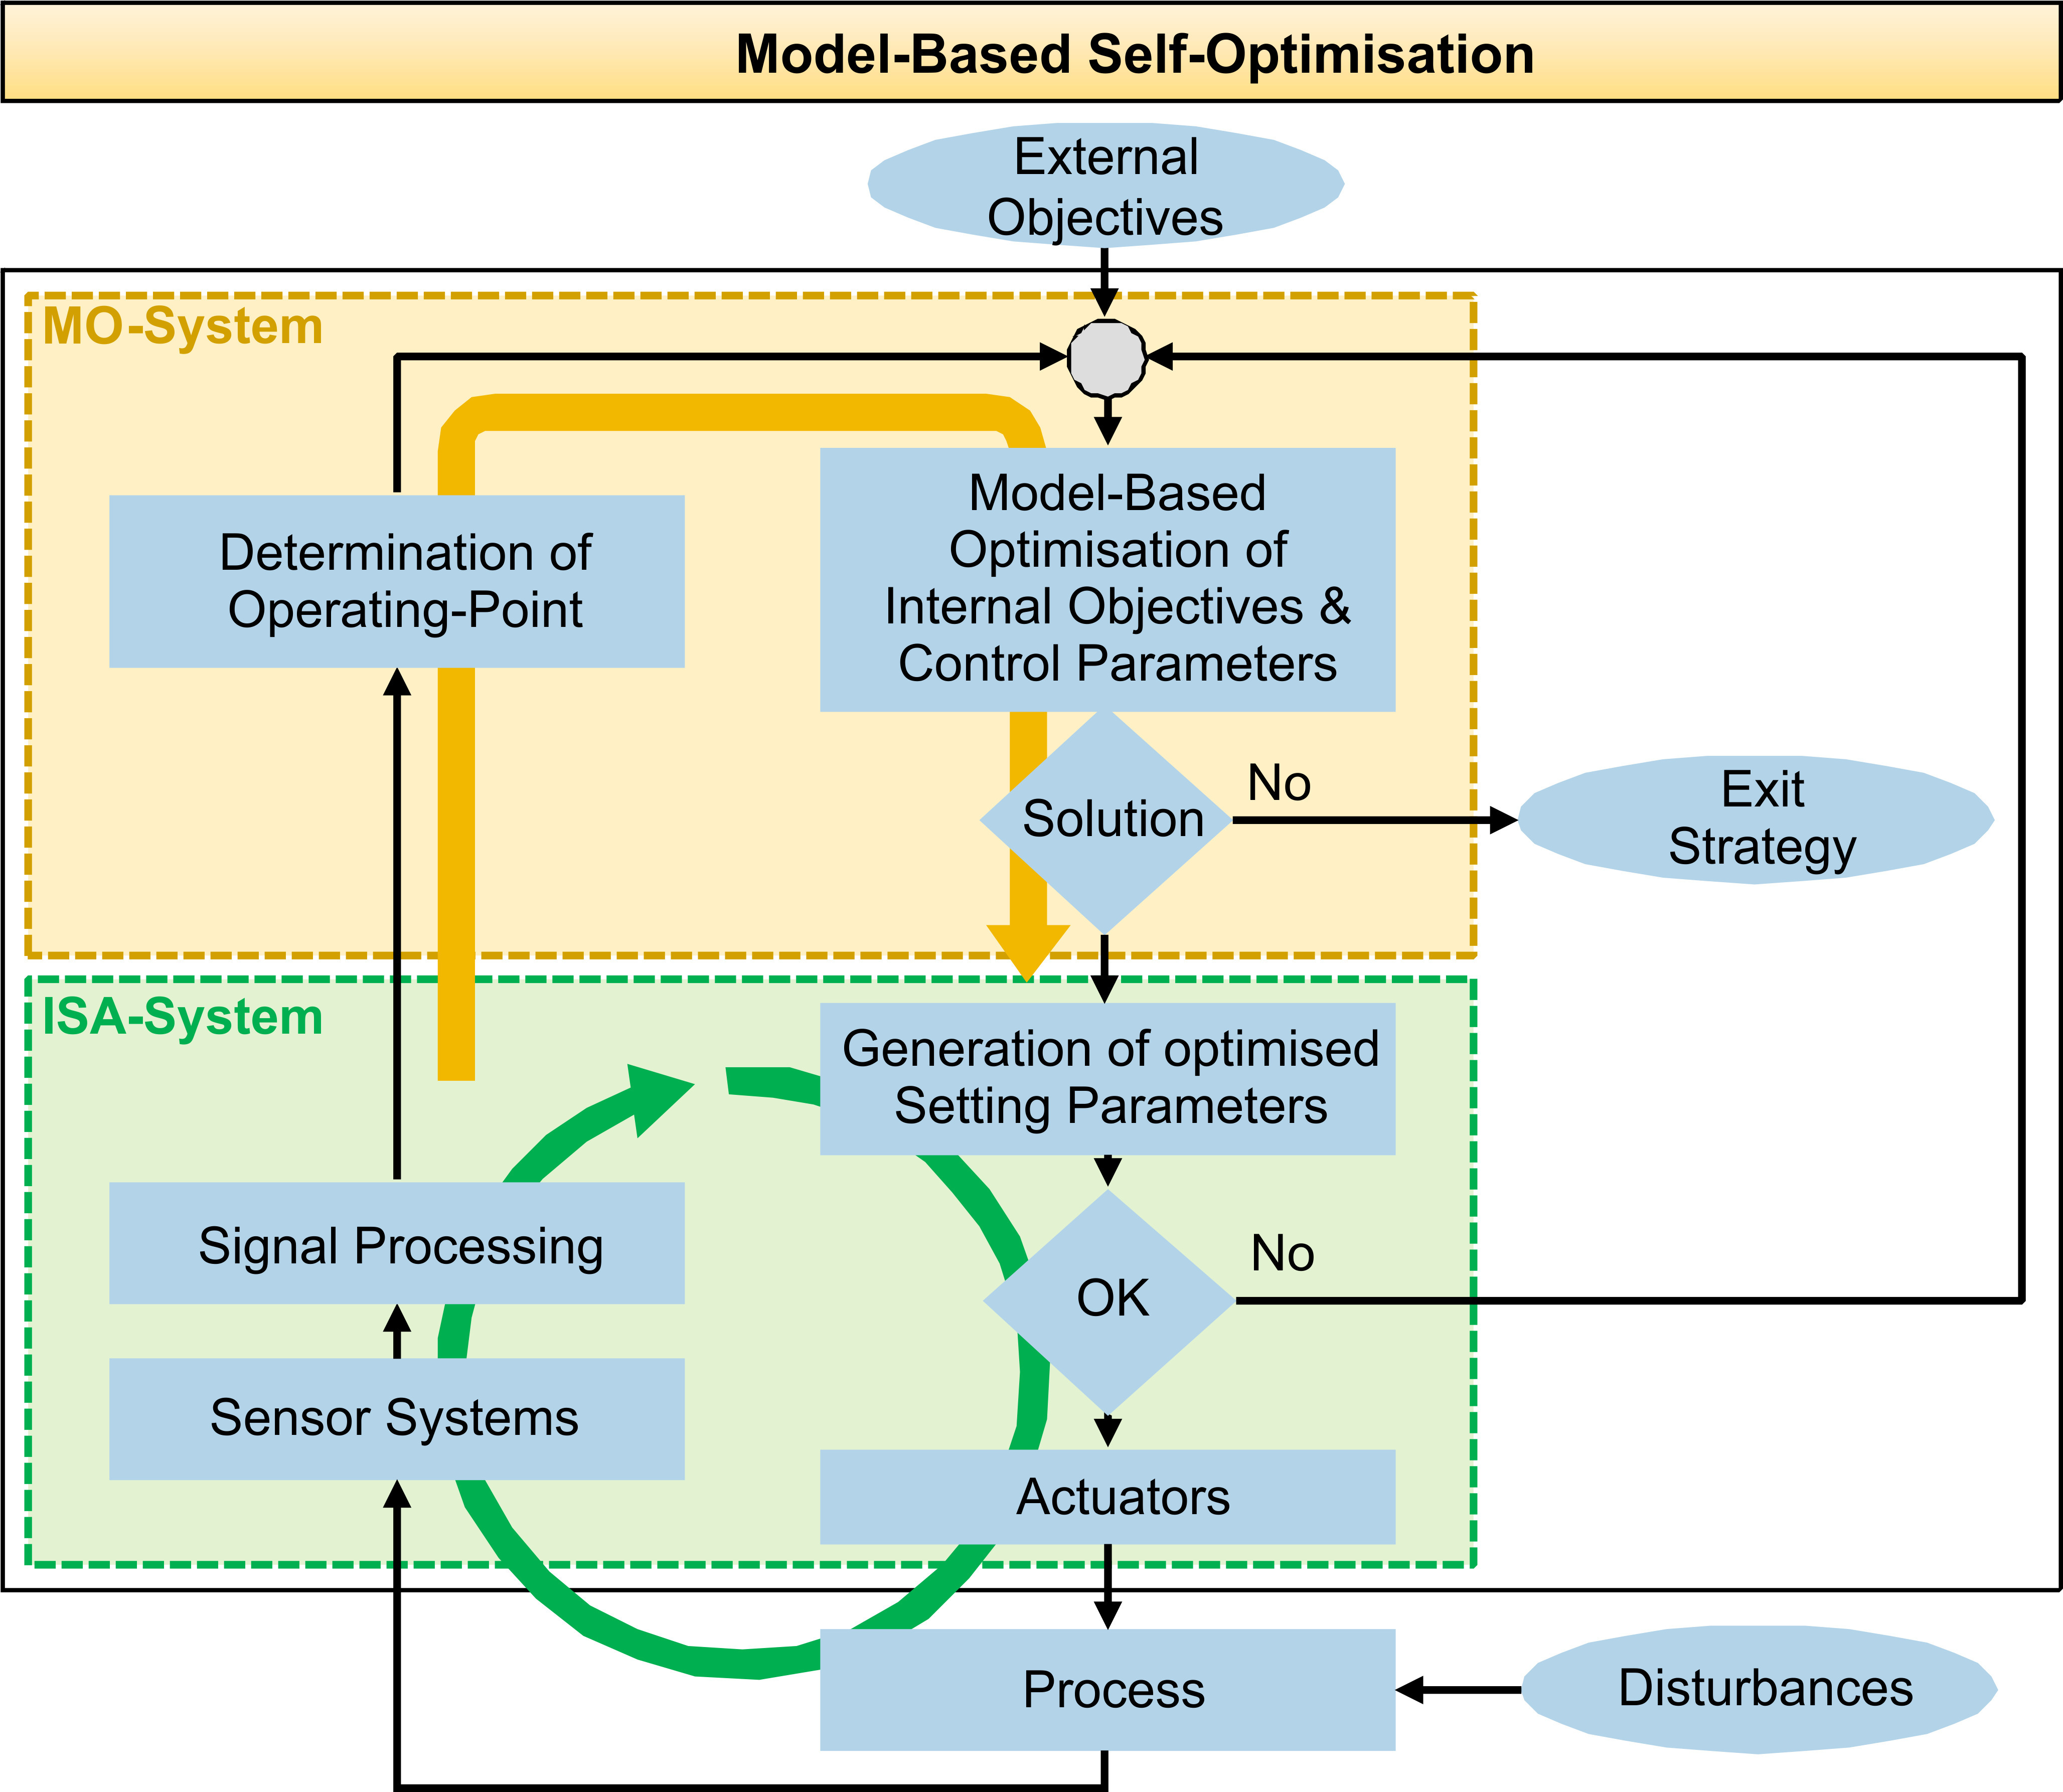 Concept of Model-Based Self-Optimisation (MBSO)